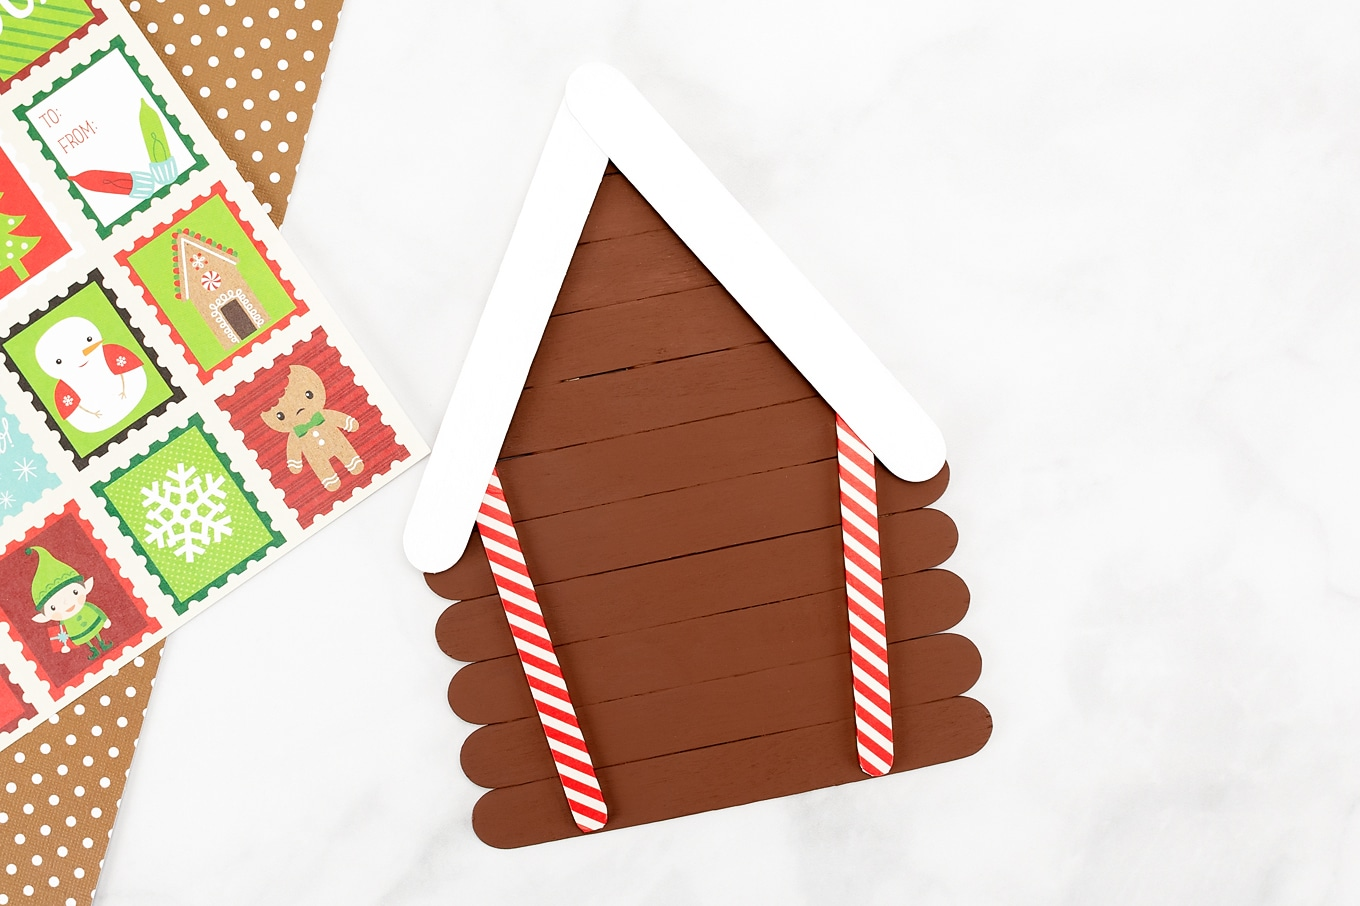 Easy Popsicle Stick Gingerbread House Craft